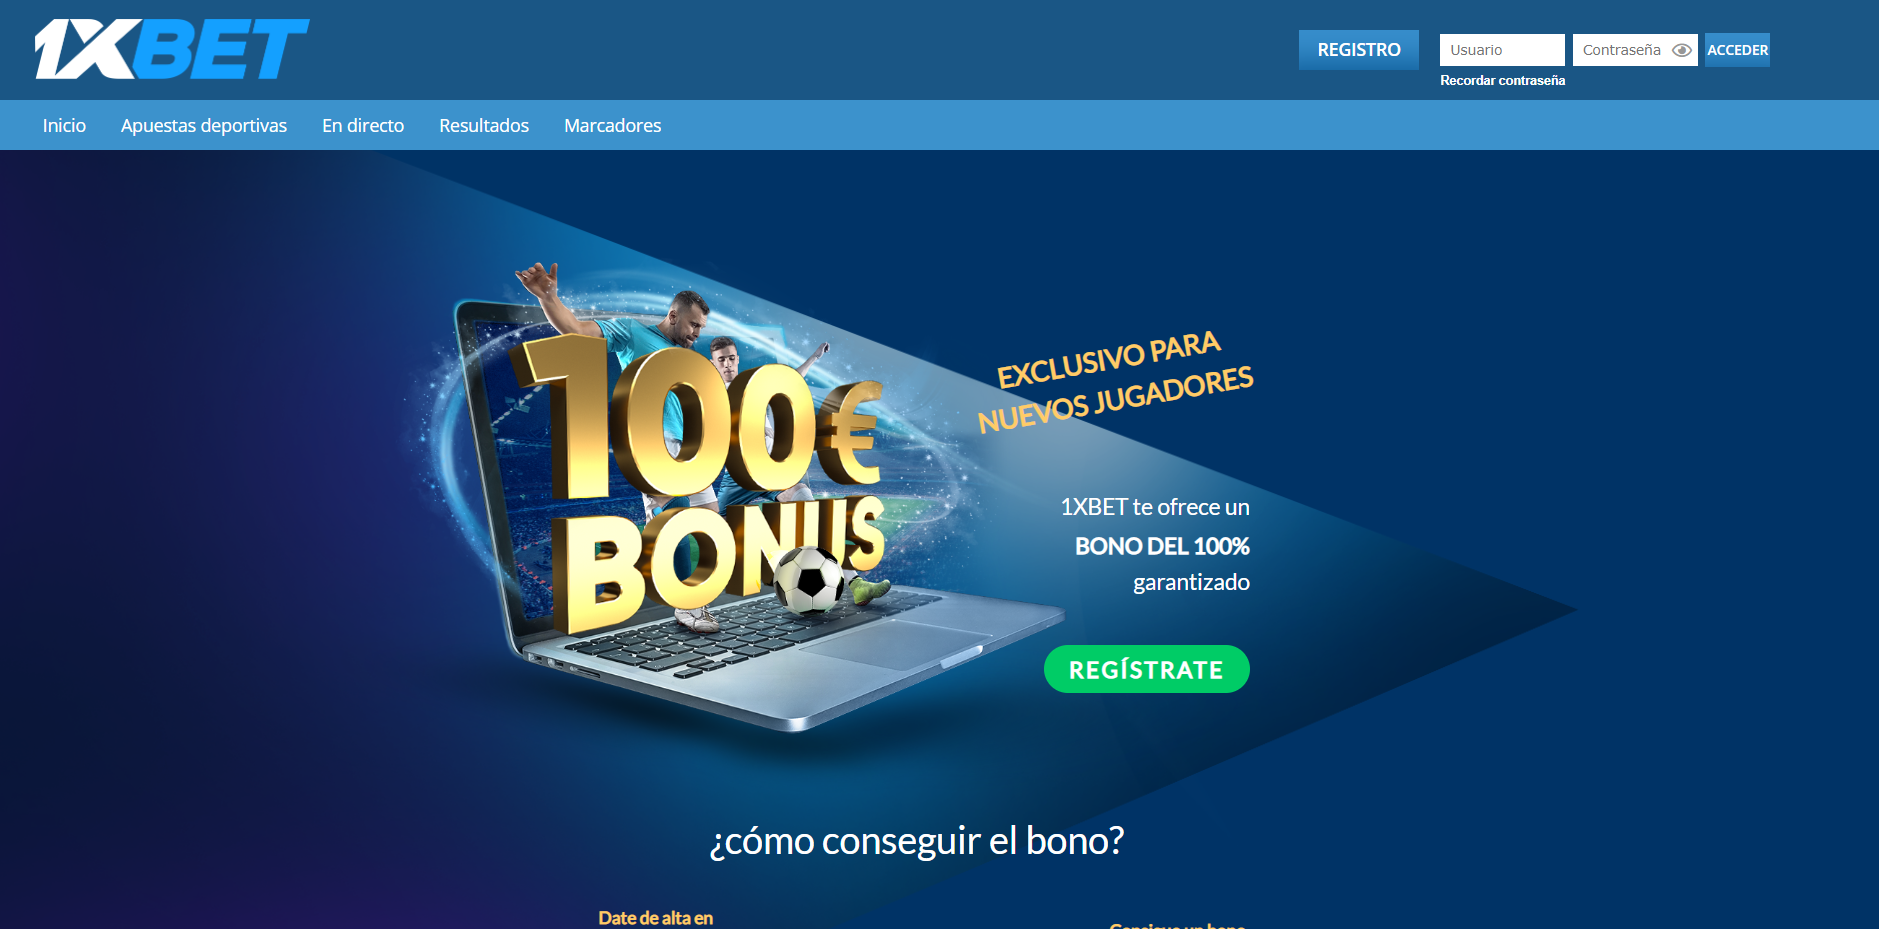 1xbet_home.png